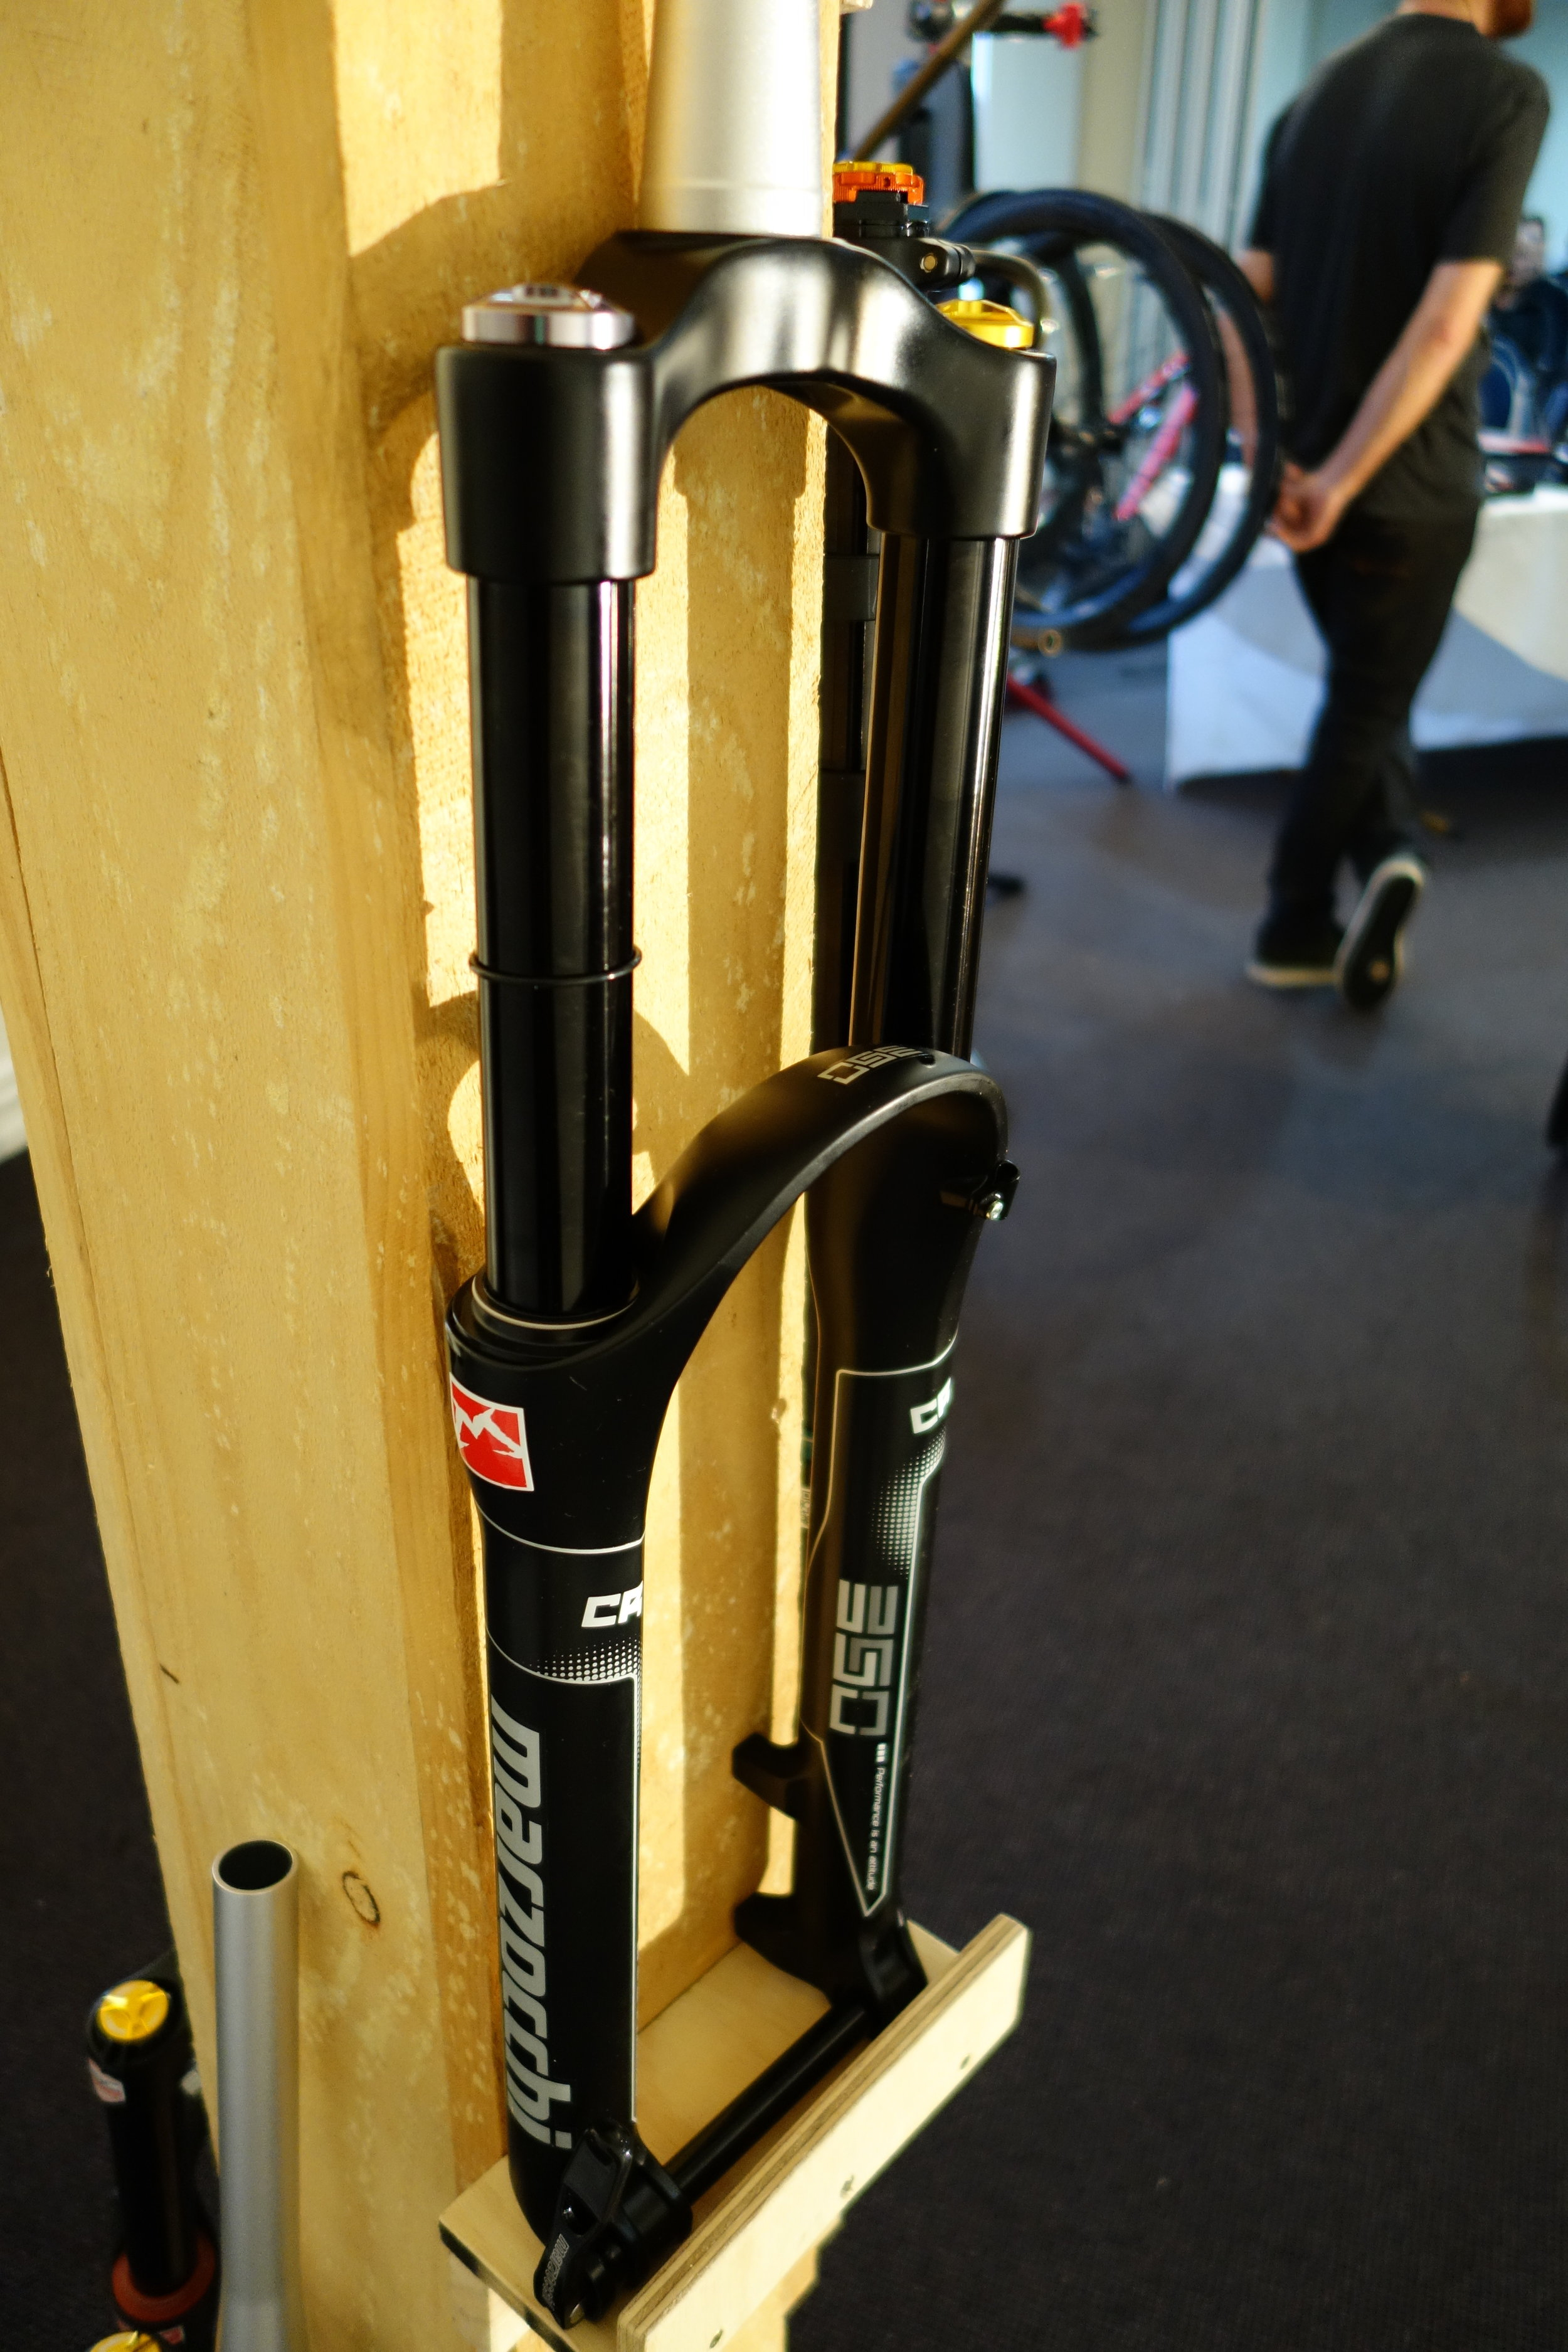 Did you know Fox Racing has bought Marzocchi? We'll see a lot more of this brand and tech guru Cam told me that their fork quality appears to be improved already.